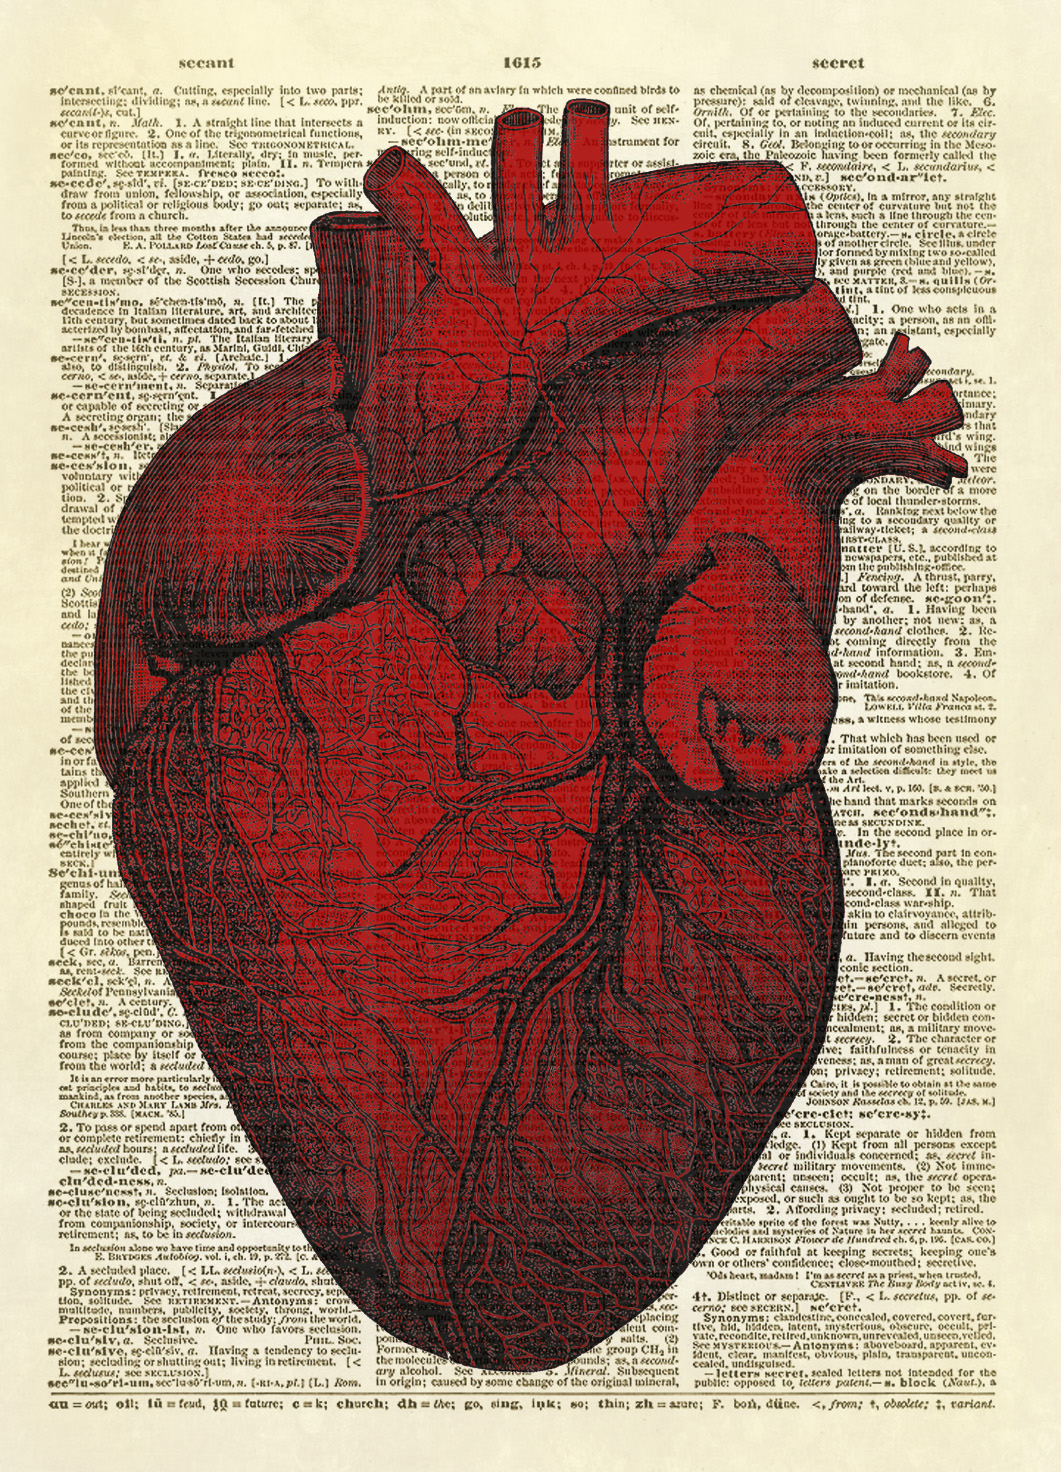 vintage red real heart diagram class 5 switch human dictionary art print no 0008 on storenvy